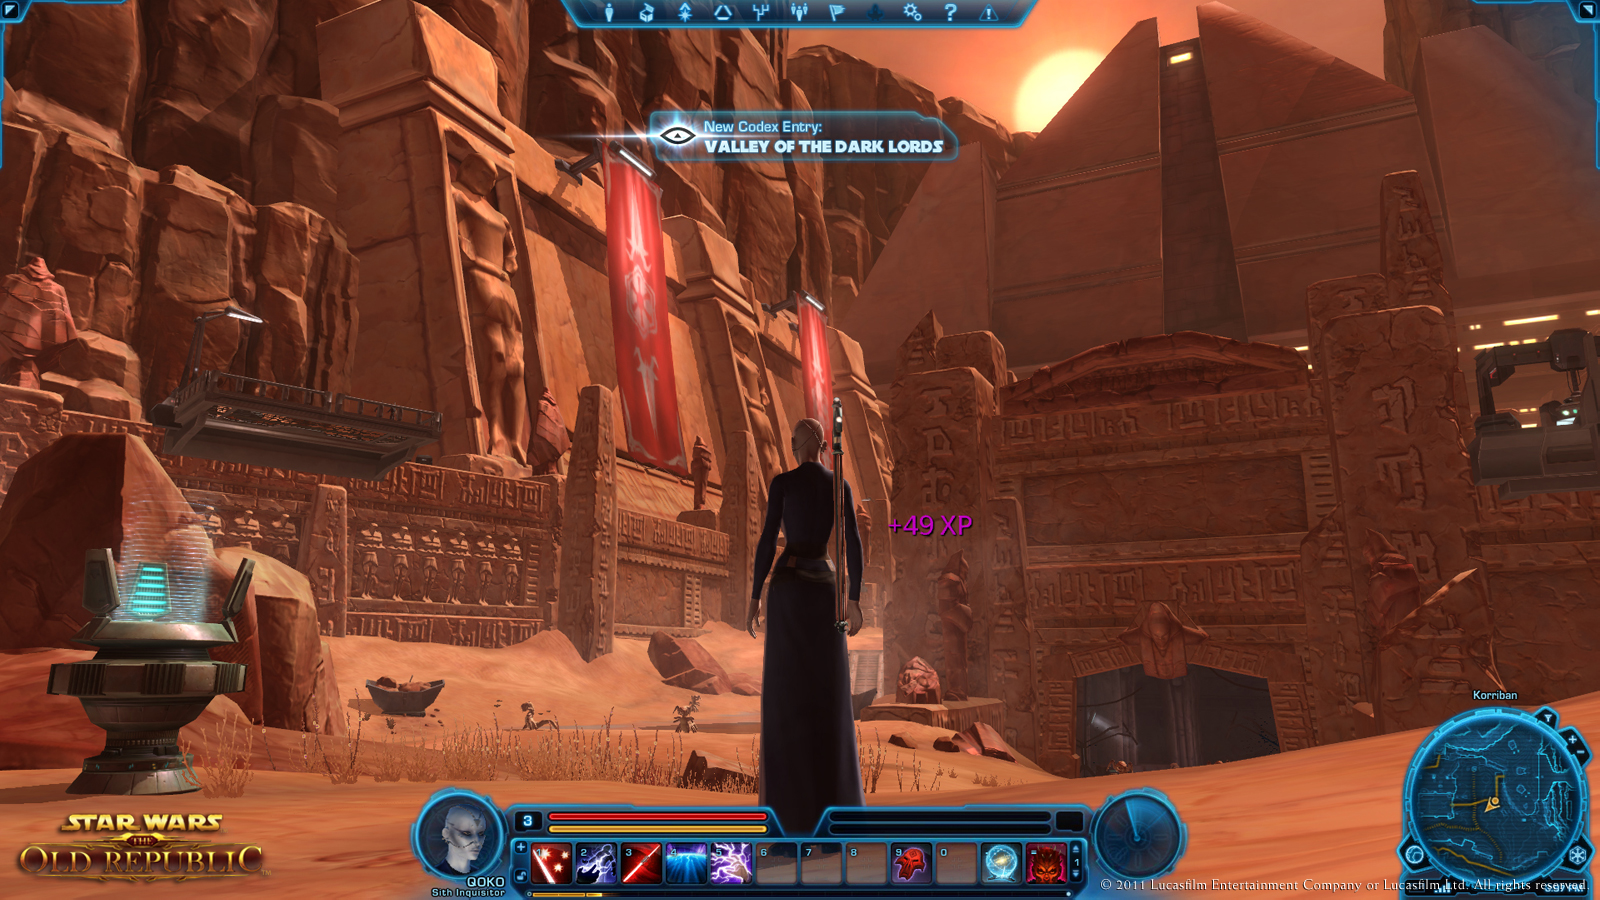 star wars knights of the old republic ii the sith lords character creation